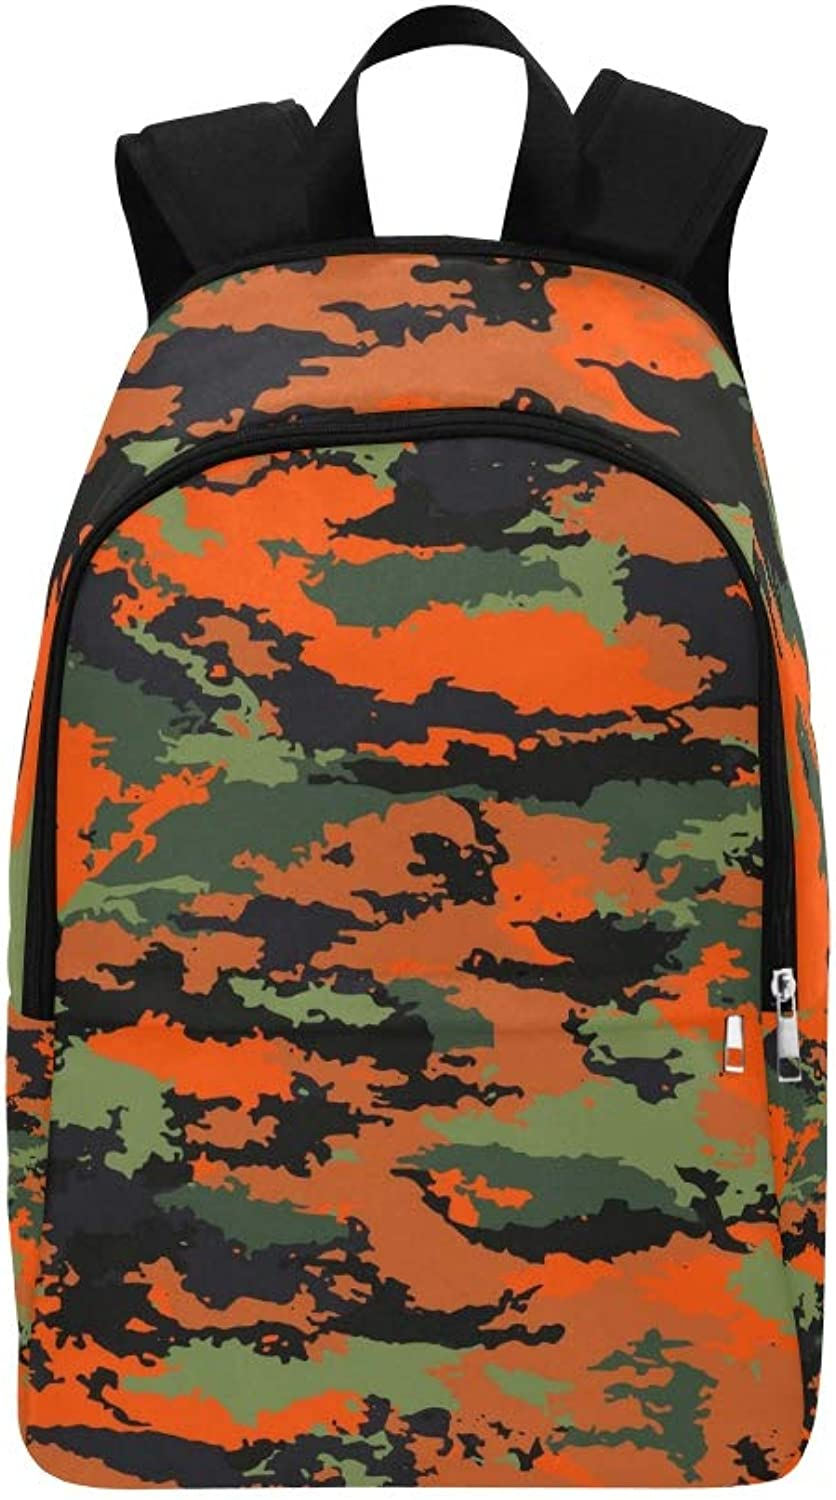 Camouflage Military Camouflage Bright Casual Daypack Travel Bag College School Backpack for Mens and Women